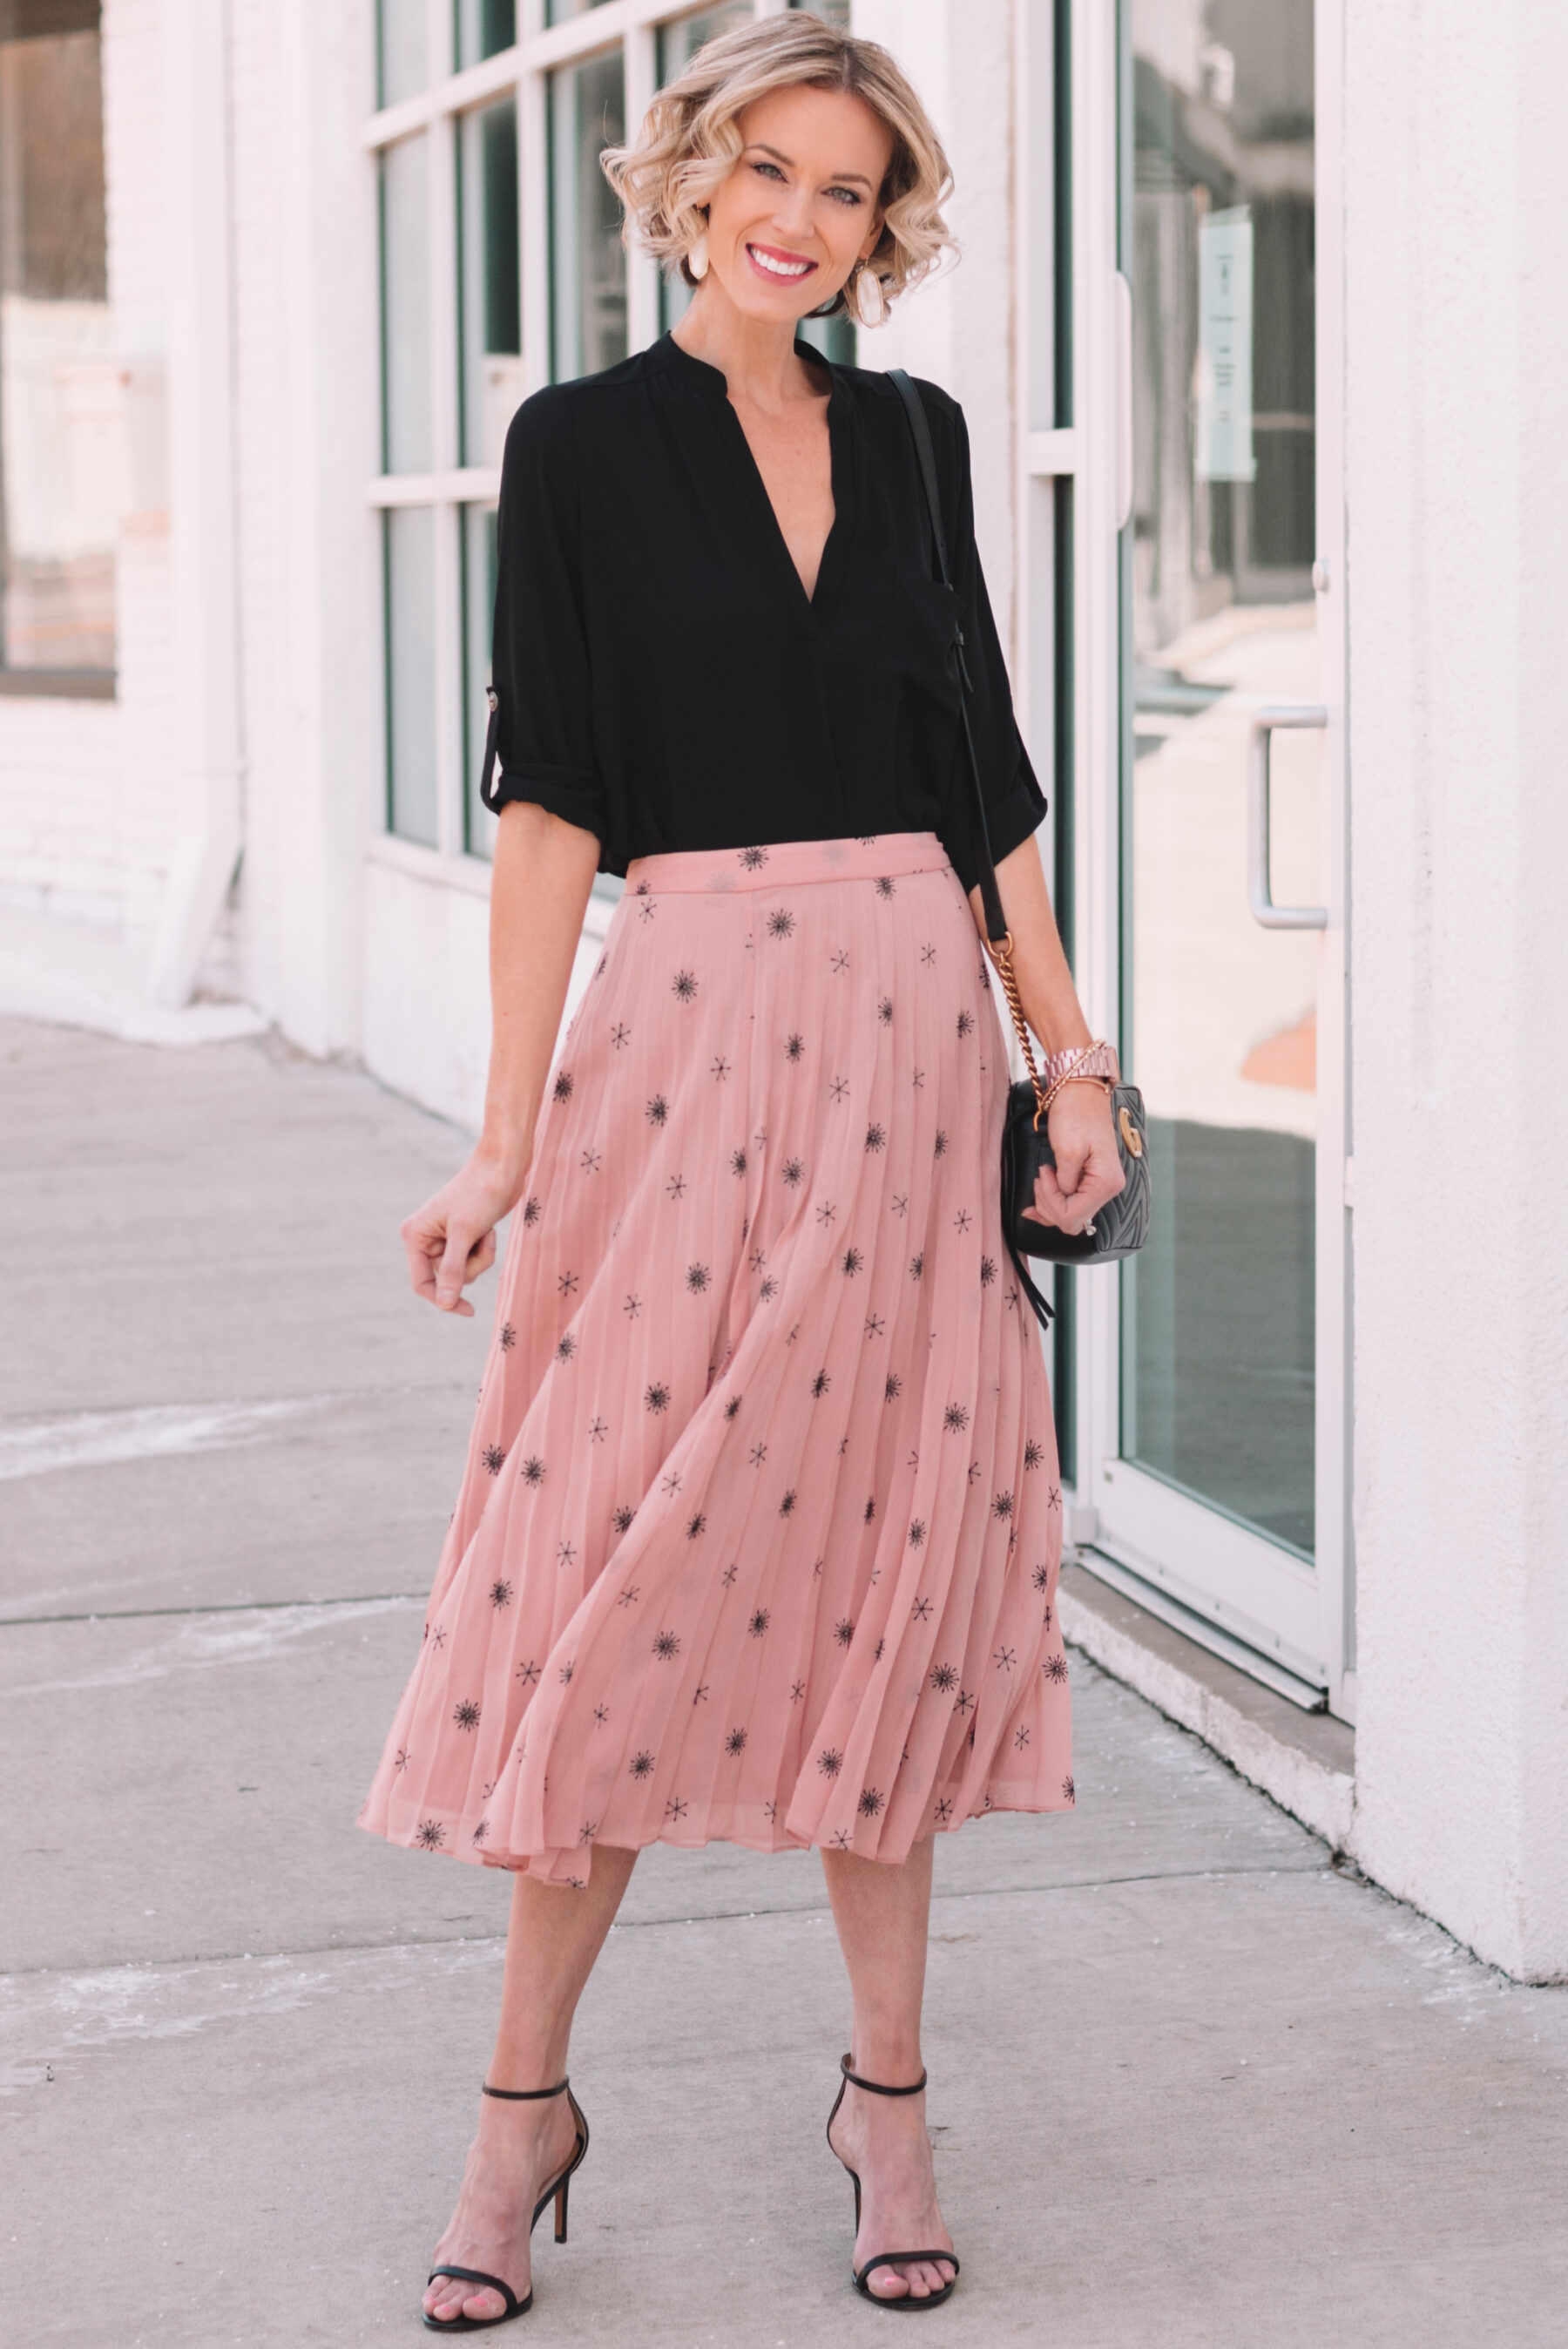 b5a99a3f46 ... blush pleated midi skirt with black top, dressy work outfit ...